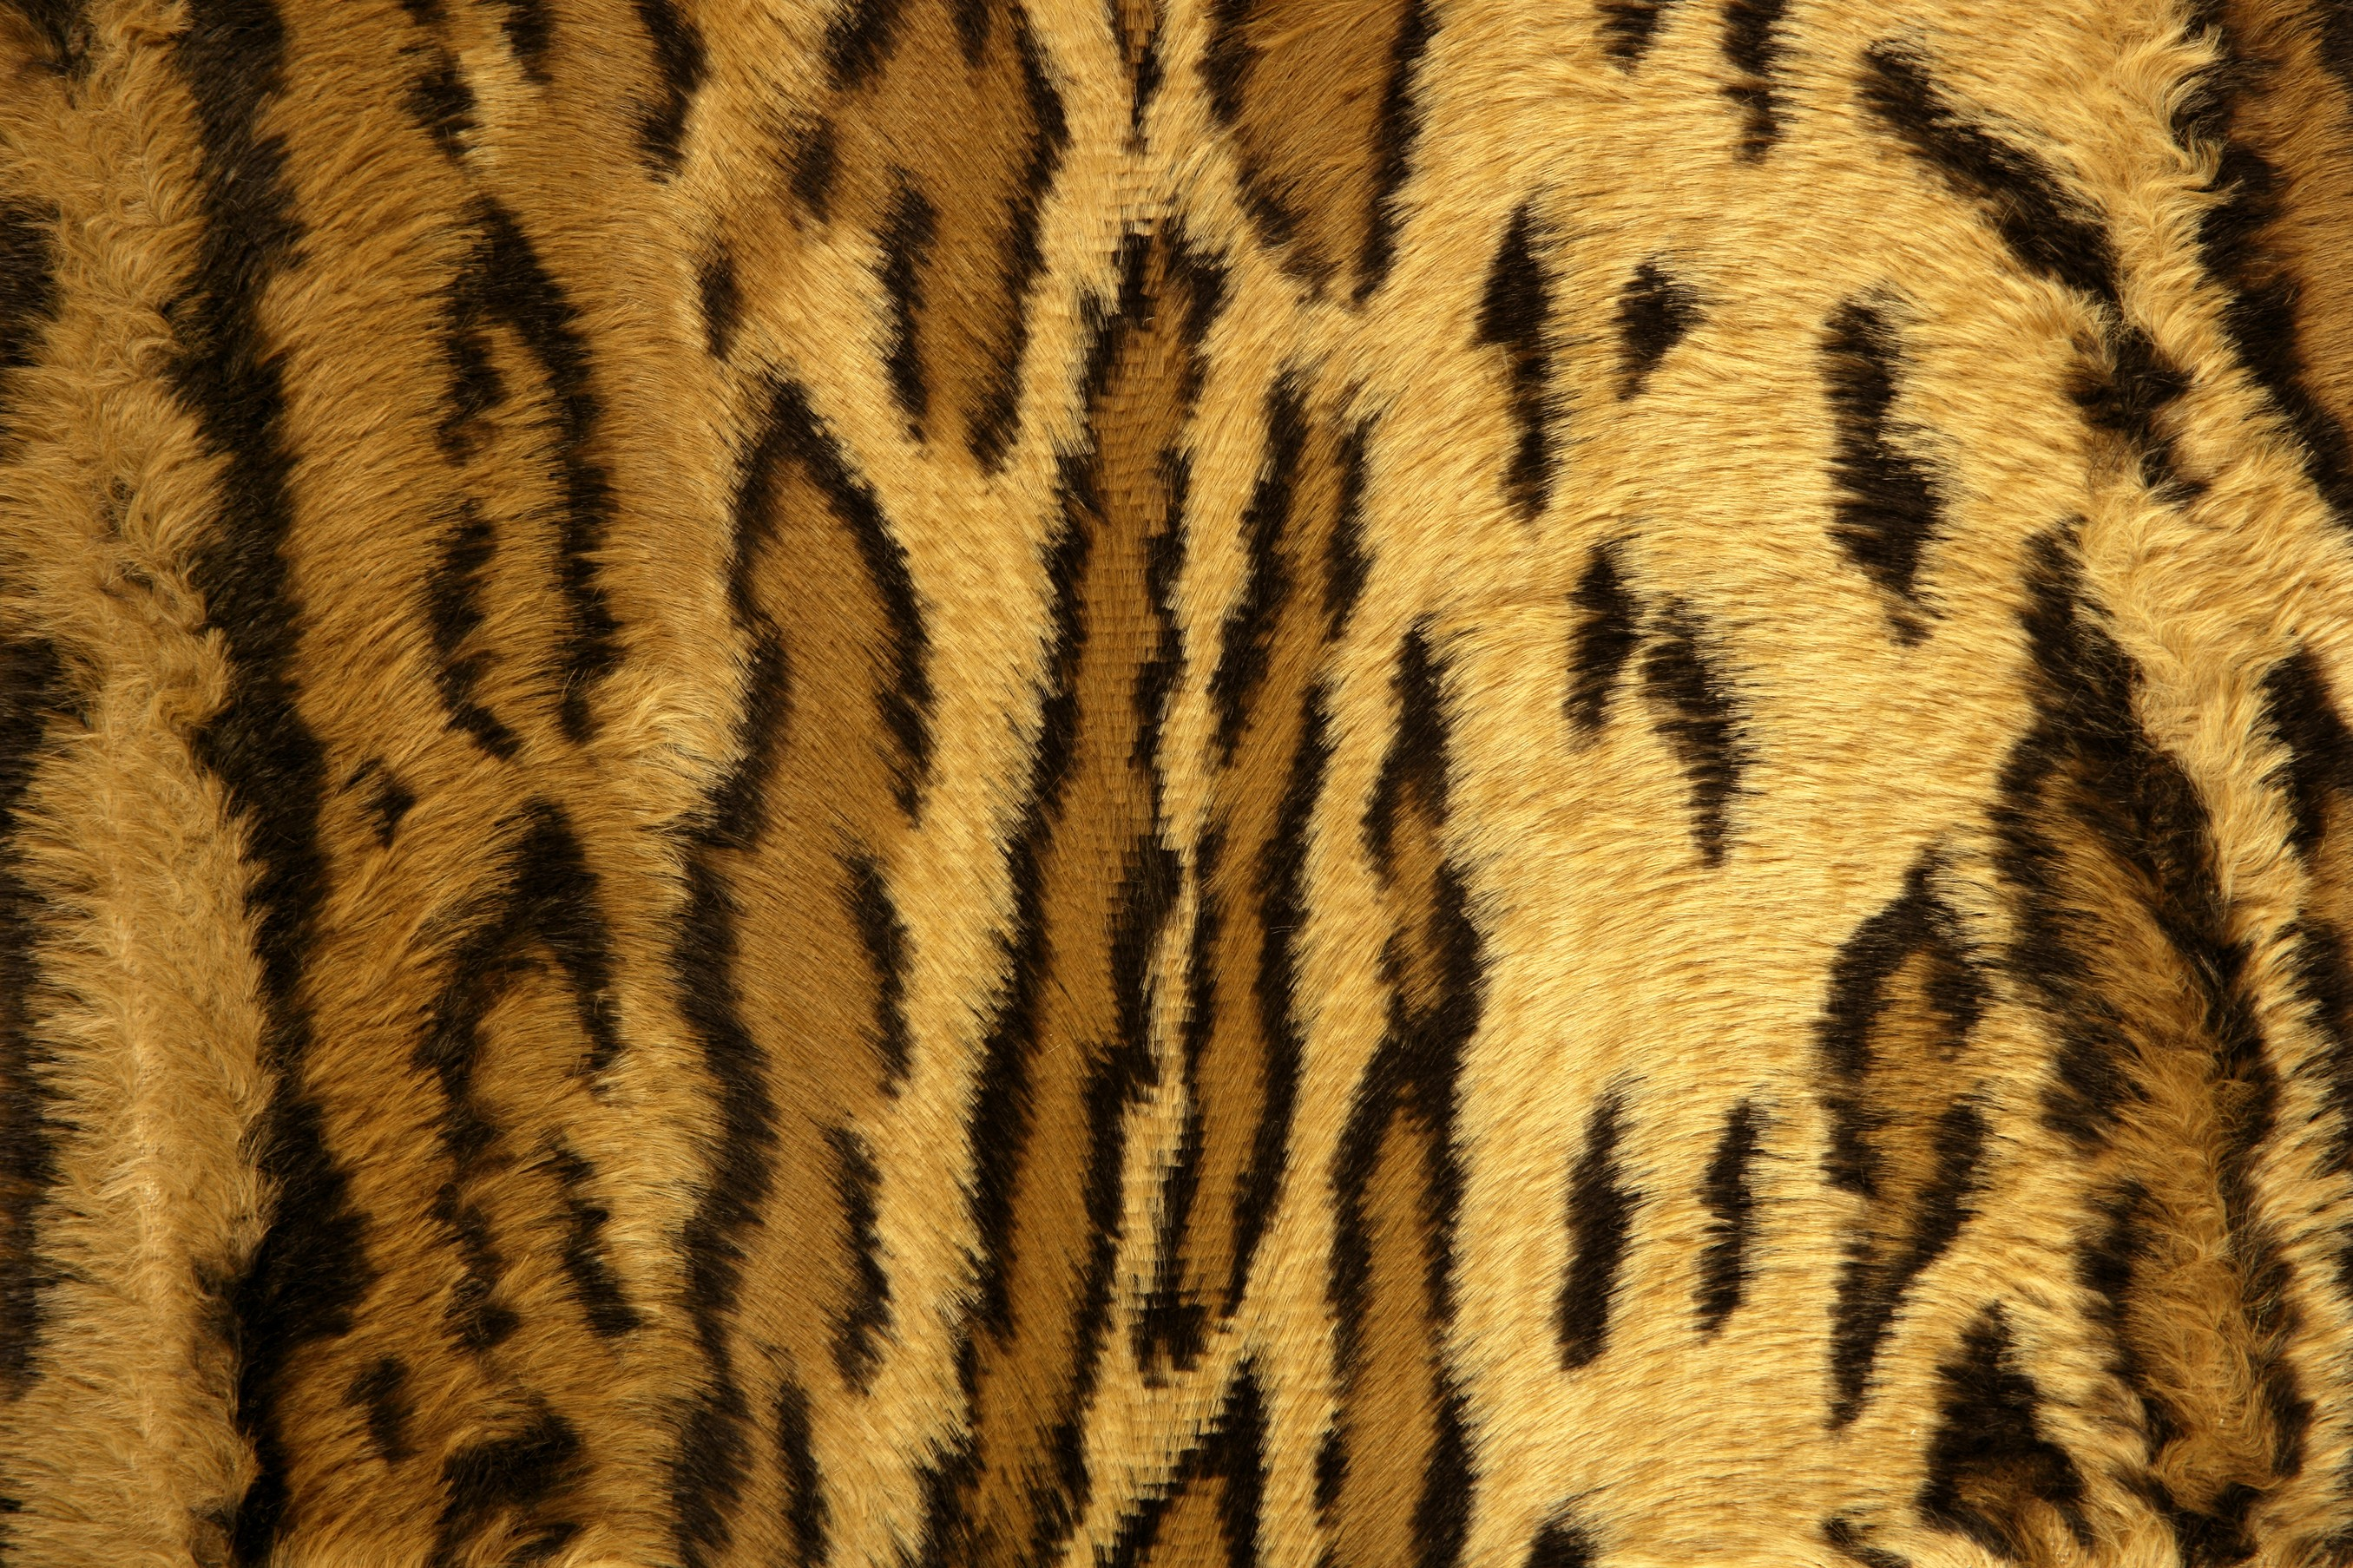 Cheetah Print iPhone Wallpapers Group (43+)